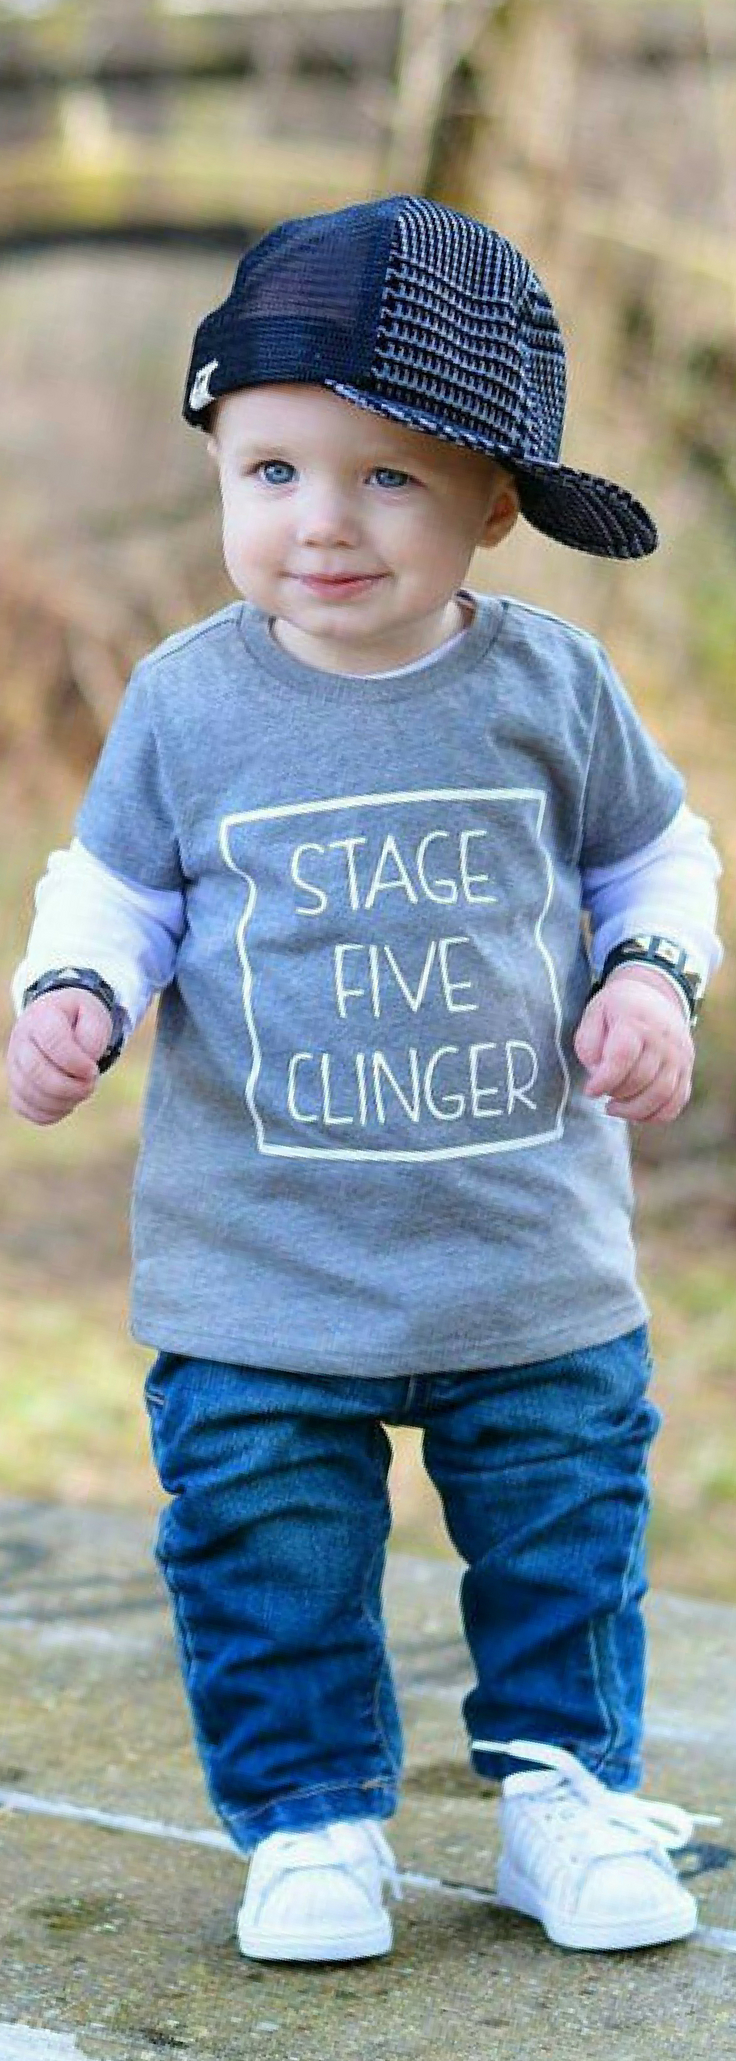 Stage Five Clinger Baby Newborn Bodysuit Toddler Shirt Funny Tee's Trendy Shirt ... 1